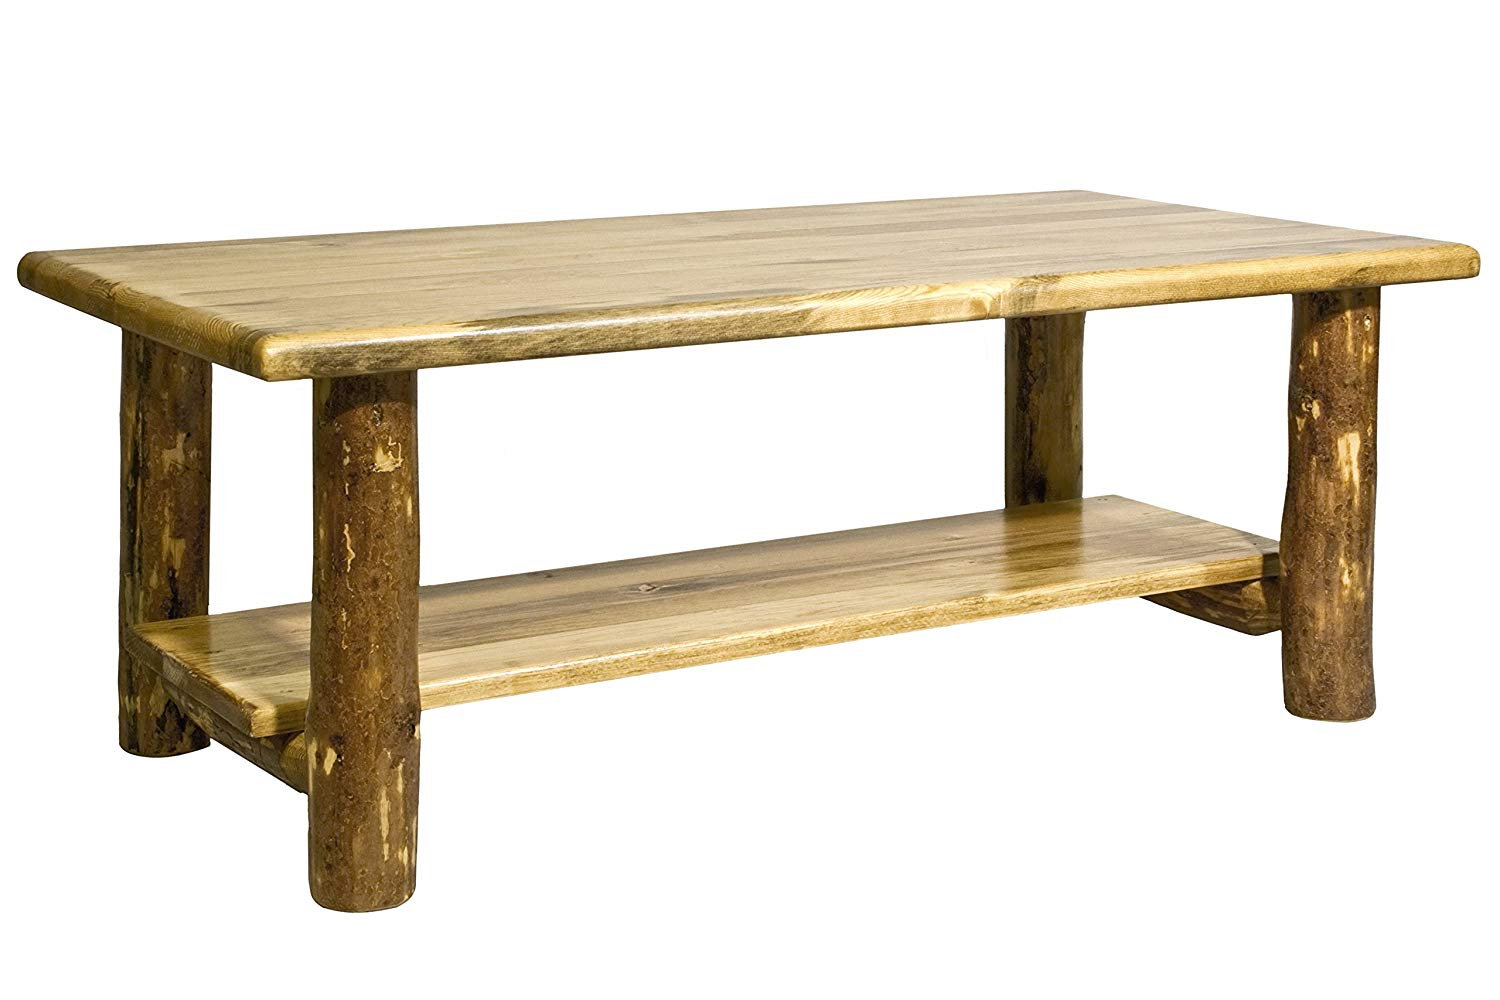 woodworks collection glacier country log coffee wood accent table stained and lacquered finish kitchen dining brass frame pier imports outdoor cushions pillows edington patio